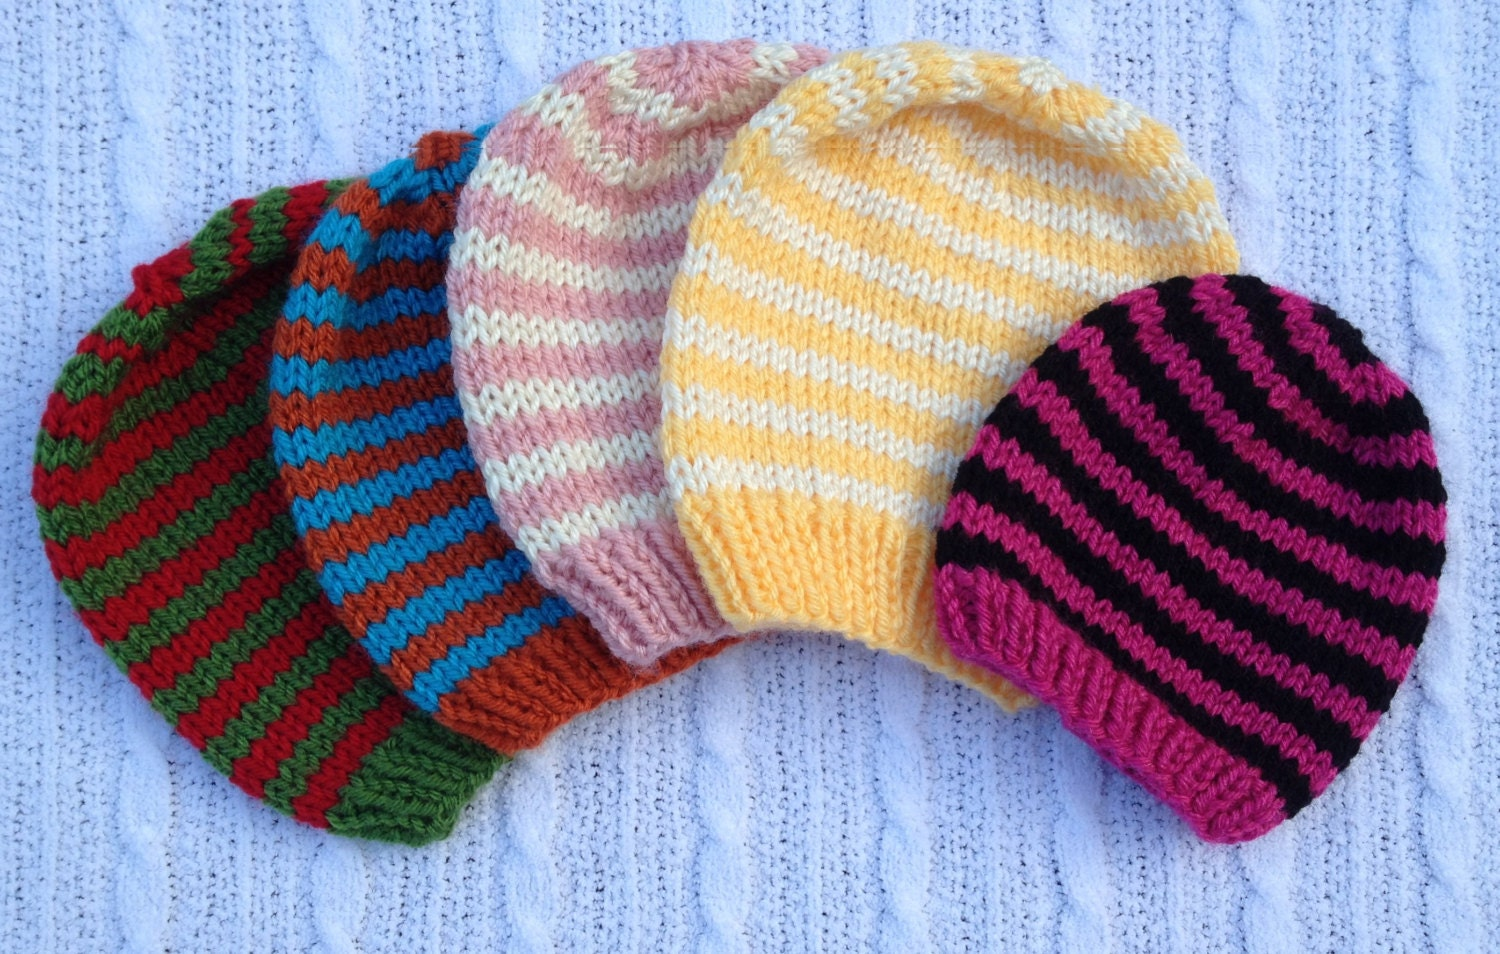 Knitting Pattern Baby Beanie : PDF knitting pattern Basic simple baby beanie hat